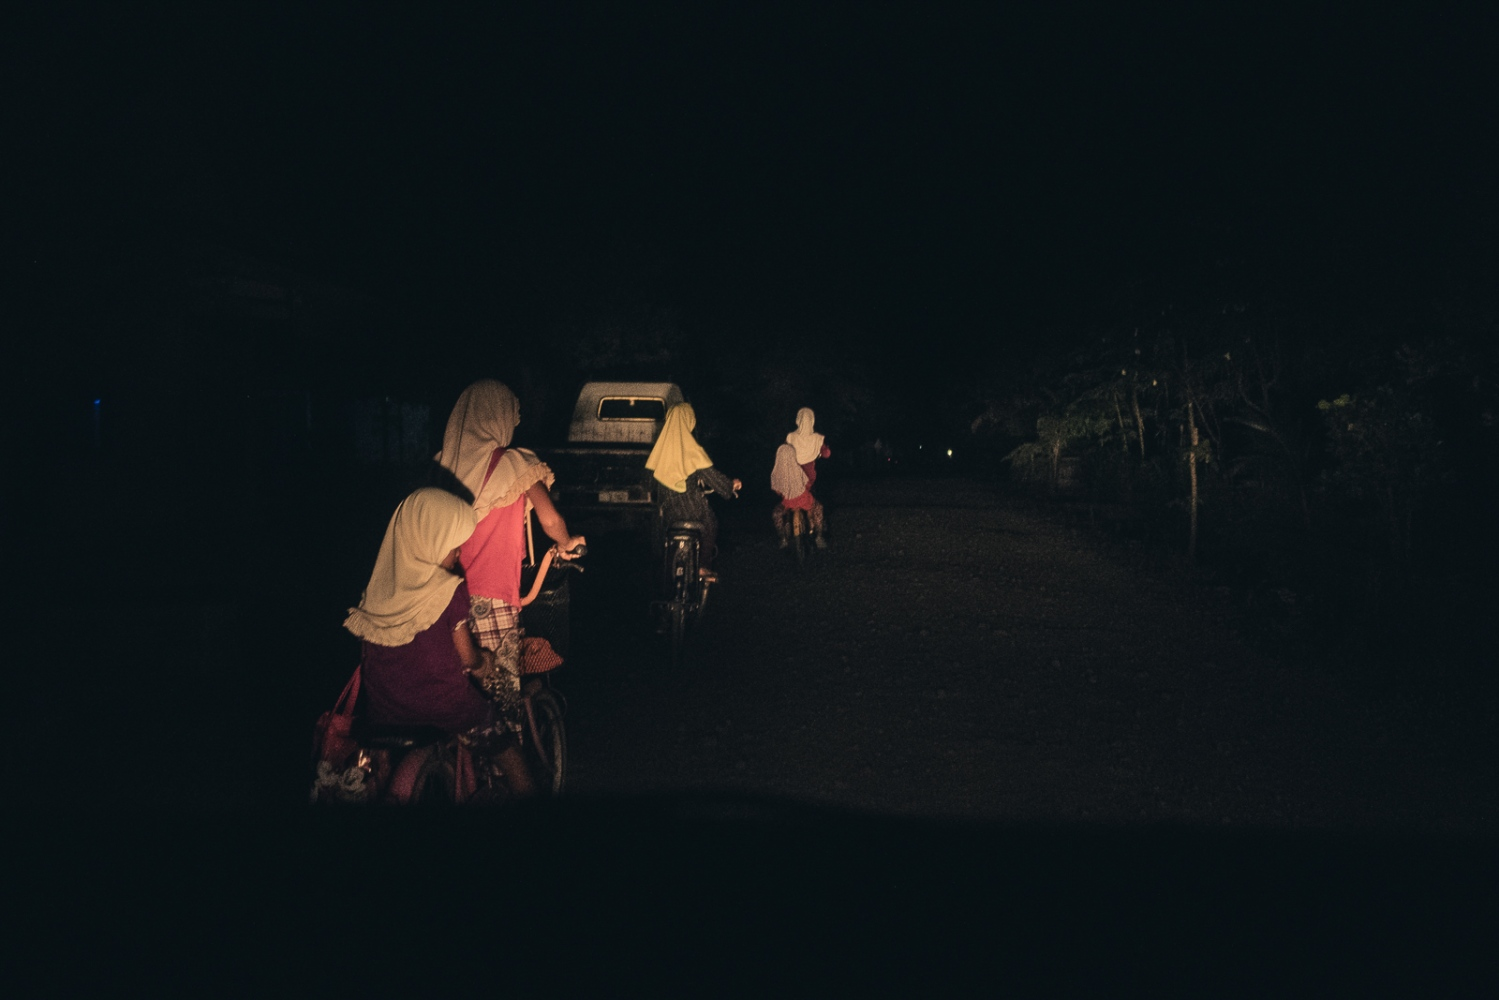 Indonesia, 2016. Young girls cycle in the dark along a road linking the town of Ngawi in East Java to surrounding villages.